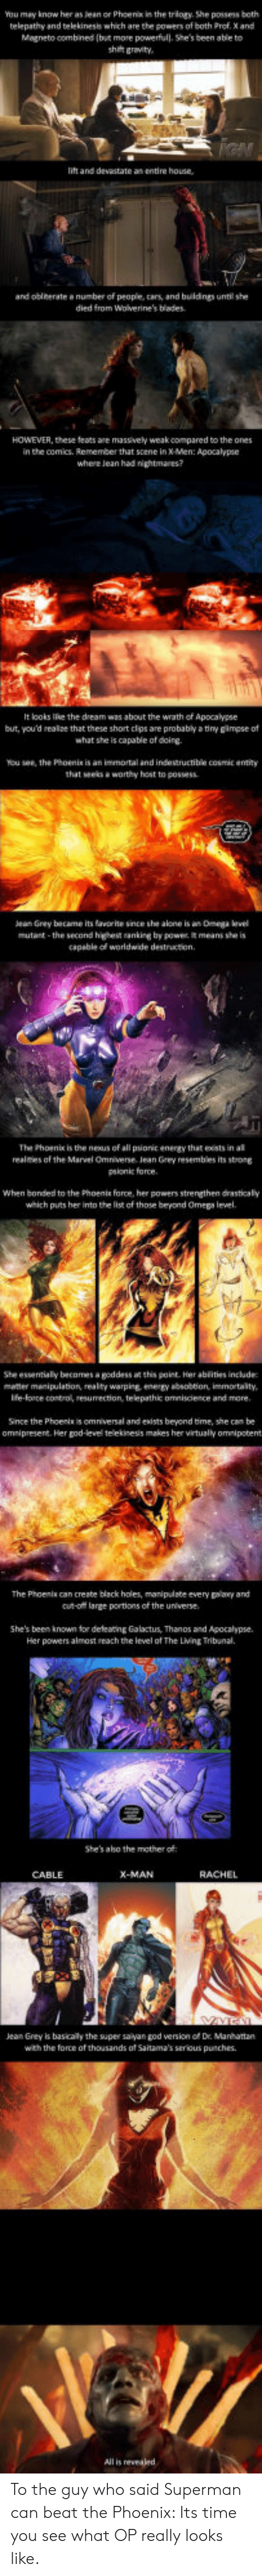 Omega: You mey know her as lean or Phoenix in the triogy. She possess beth  telepathy and telekinesis which are the powers of both Prof. X and  Magneto combined (but more powerfull. She's been able to  shi gravity  lift and devastate as entire house  and obinerate a number of people, cars and buldngs until she  died from Wolverine's blades  HOWEVER, these teats are massively weak compared to the ones  in the comics. Remember that scene in X Men: Apocalypse  where lean had nightmares?  It looks lice the dream was about the wrath of Apocalypse  but, you'd realze that these short clps are probably a tiny gimpse of  what she is capable of doing  You see, the Phoenis is an immortal and indestructible cosmic entity  that seeksa worthy host to possess  eaGrey became its fate since she alone is an Omega el  mutant -the second highet anking by powe t means she is  capable of worldwide destruction.  The Phoenik is the neaus of all pionit enengy that eists in al  realnies of the Marvel Omniverse. Jean Grey resembles its strong  psionic force  When bonded to the Phoents force, her powers strengthen drasticaly  which puts her into the list of those beyond Omega level  She essentially becomes a goddess at this point Her ablities include  metter menipulation, realty warping energy absobtion immortality,  Ife-lorce control, resumection, telepathic omniscience and more  Since the Phoenix is omniversal and exists beyond time, she can be  omnipresent. Her god-level telekinesis makes her virtualy omnipotent  The Phoenis can create black holes, manipulate every psany and  cu-oft large portions of the universe  She's been known for deleacing Galactus, Thanos and Apocalypse.  Her powers almost reach the level of The Lving Tribunal.  She's aho the mother of  CABLE  ean Grey is basicaly the super saiyan god version of Dr. Manhattan  with the force of thousands of Saitama's serious punches.  All is revealed To the guy who said Superman can beat the Phoenix: Its time you see what OP really looks like.